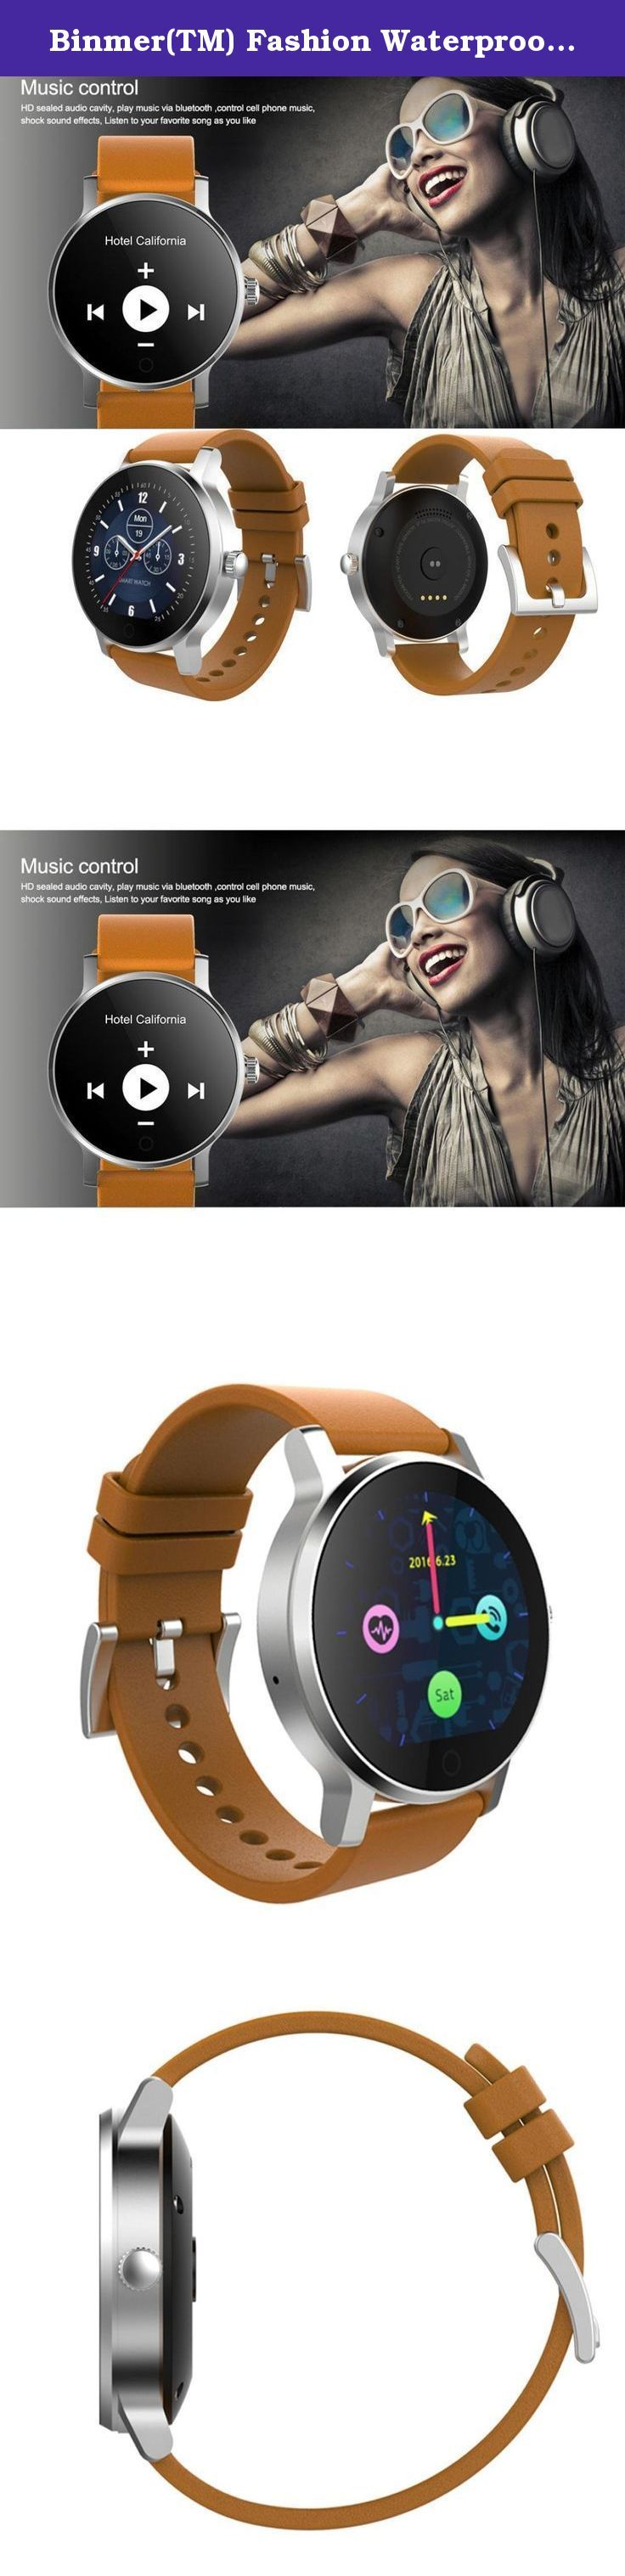 Binmer(TM) Fashion Waterproof Bluetooth Smart Wrist Watch For iphone (Brown). Feature: Bluetooth version: BT4.0LE RAM and ROM: 128MB + 64MB Memory card expansion (support what card / maximum extended memory): None And the degree of wear waterproof: can engage in activities (Wash hands, bathing, rain, swimming, etc.) waterproof IP54, wash up, rain Screen type / size / resolution: Round / 240 * 240 Battery Type / Battery capacity: 300MAH high-capacity polymer battery Charging time / standby...